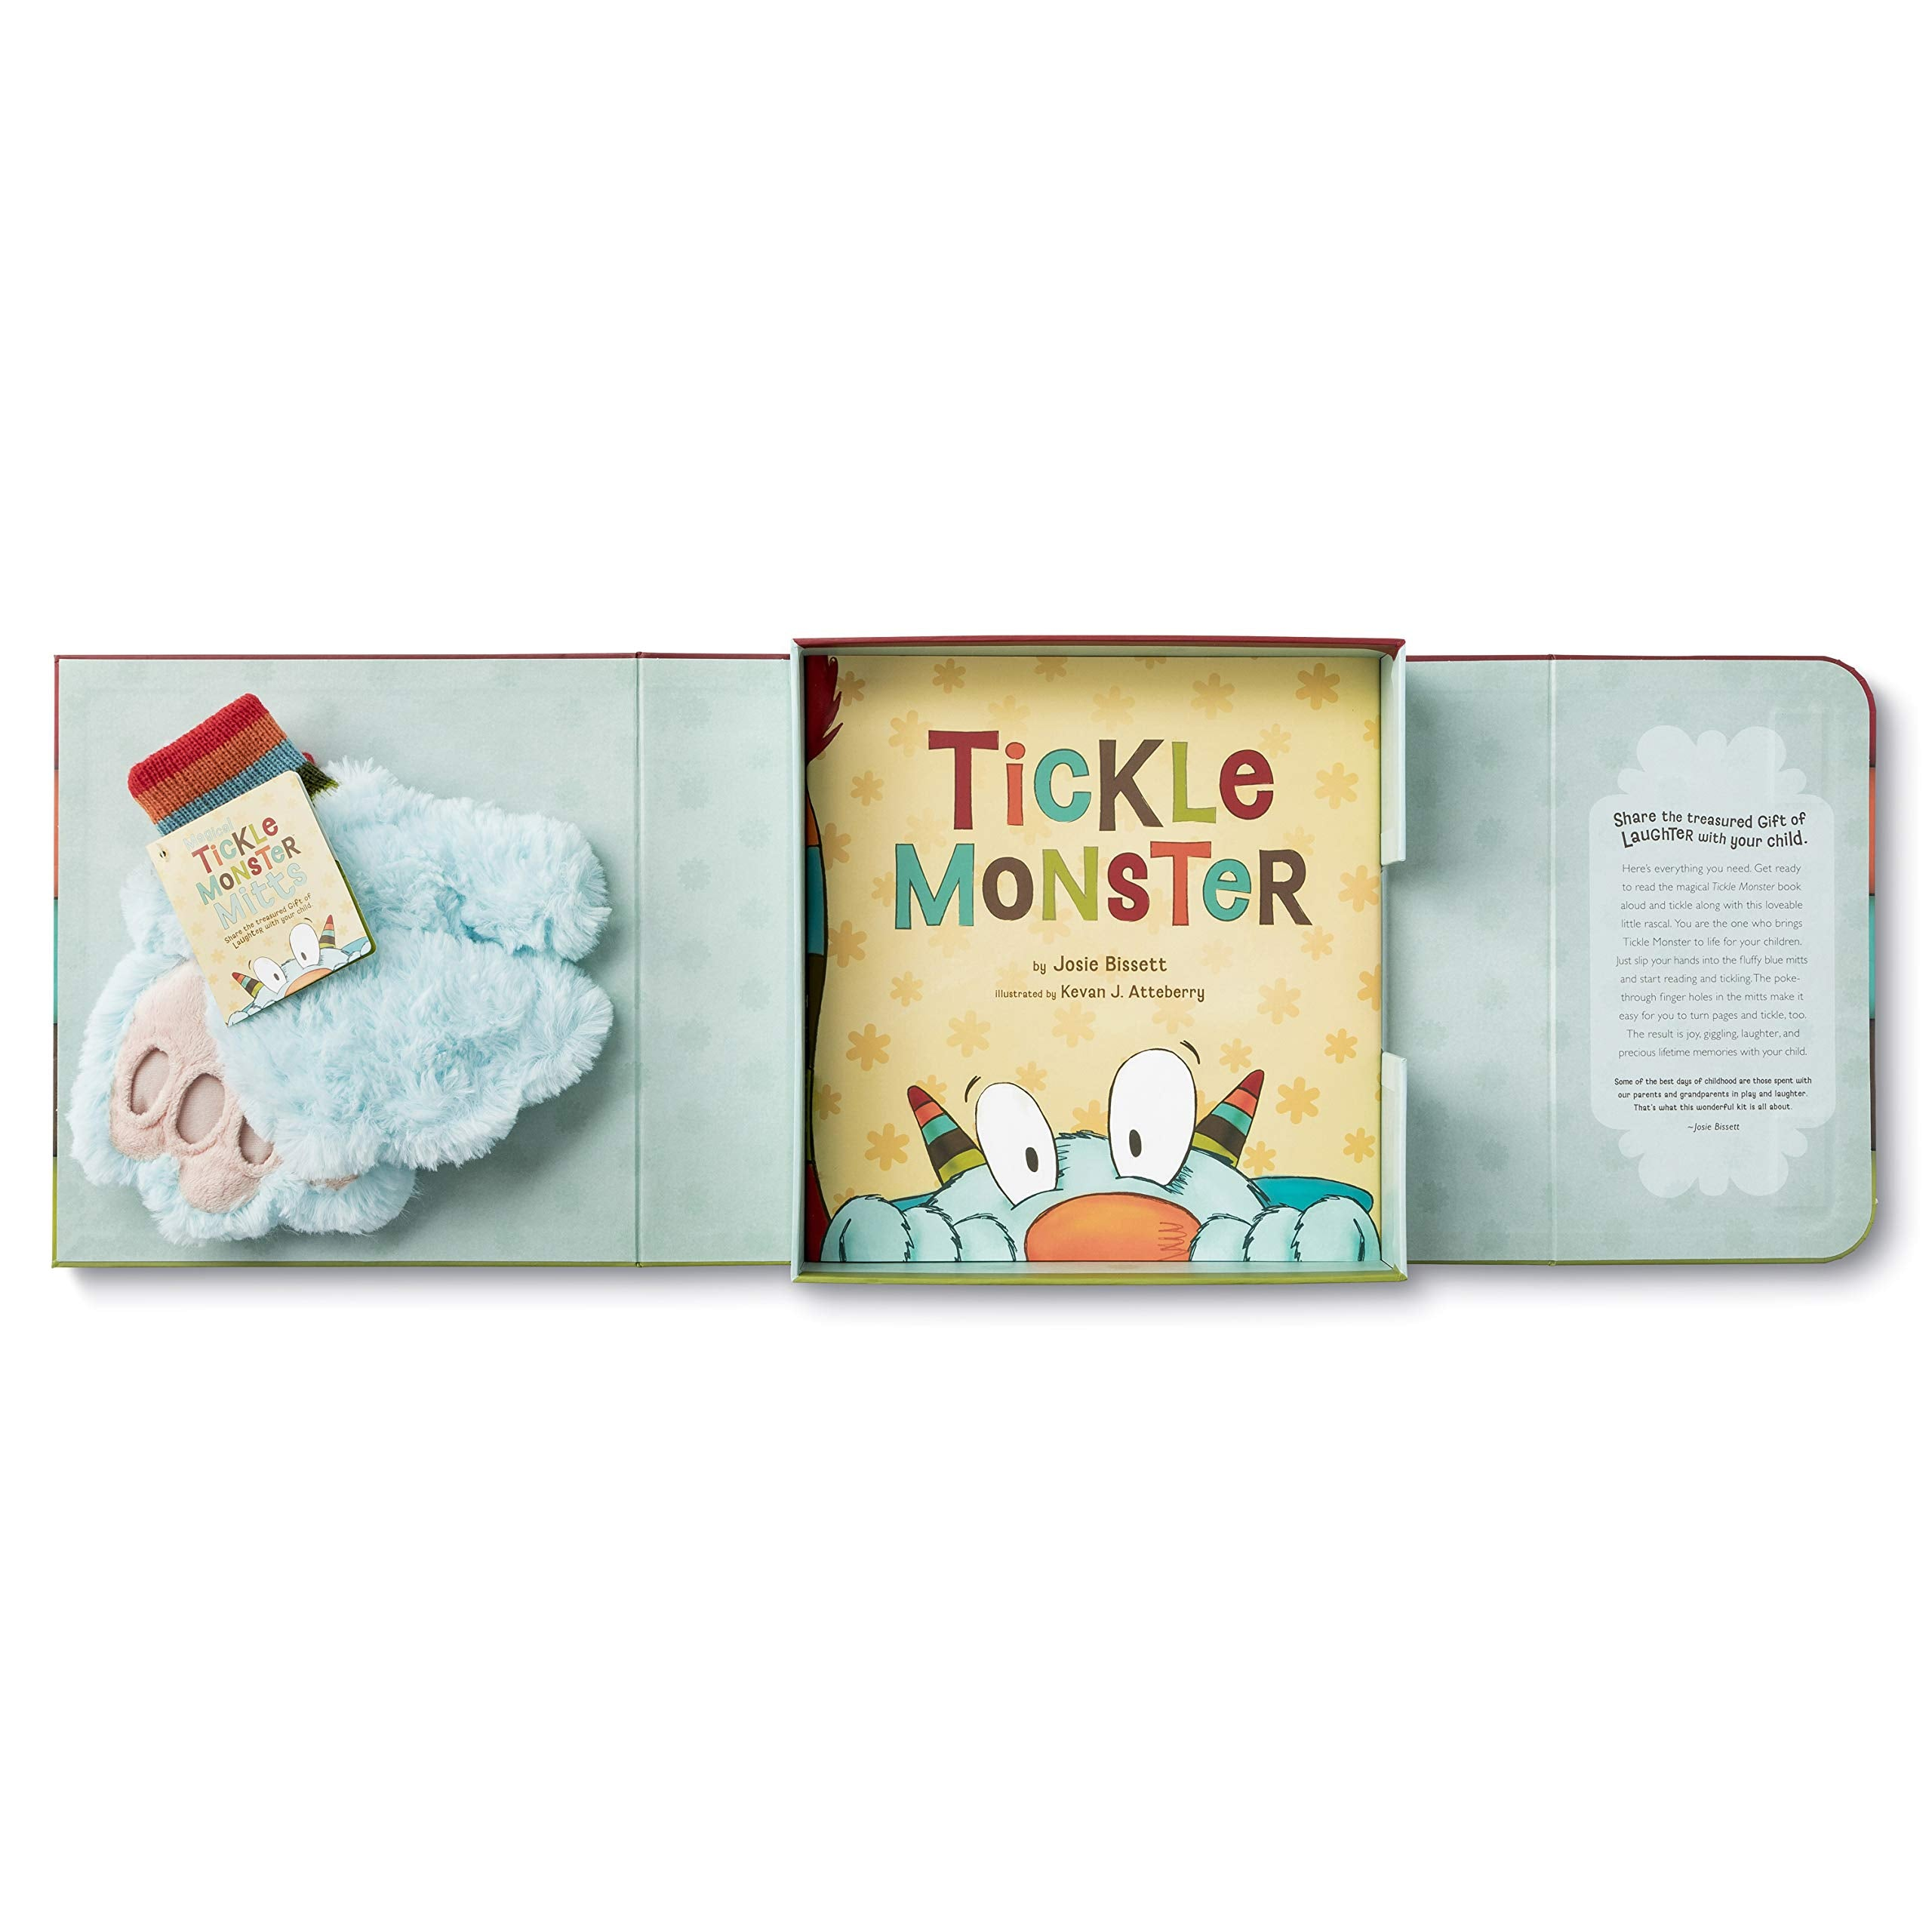 Tickle Monster Laughter Kit - Includes the Tickle Monster Book and Fluffy MittsTickle Monster Laughter Kit - Includes the Tickle Monster Book and Fluffy Mitts